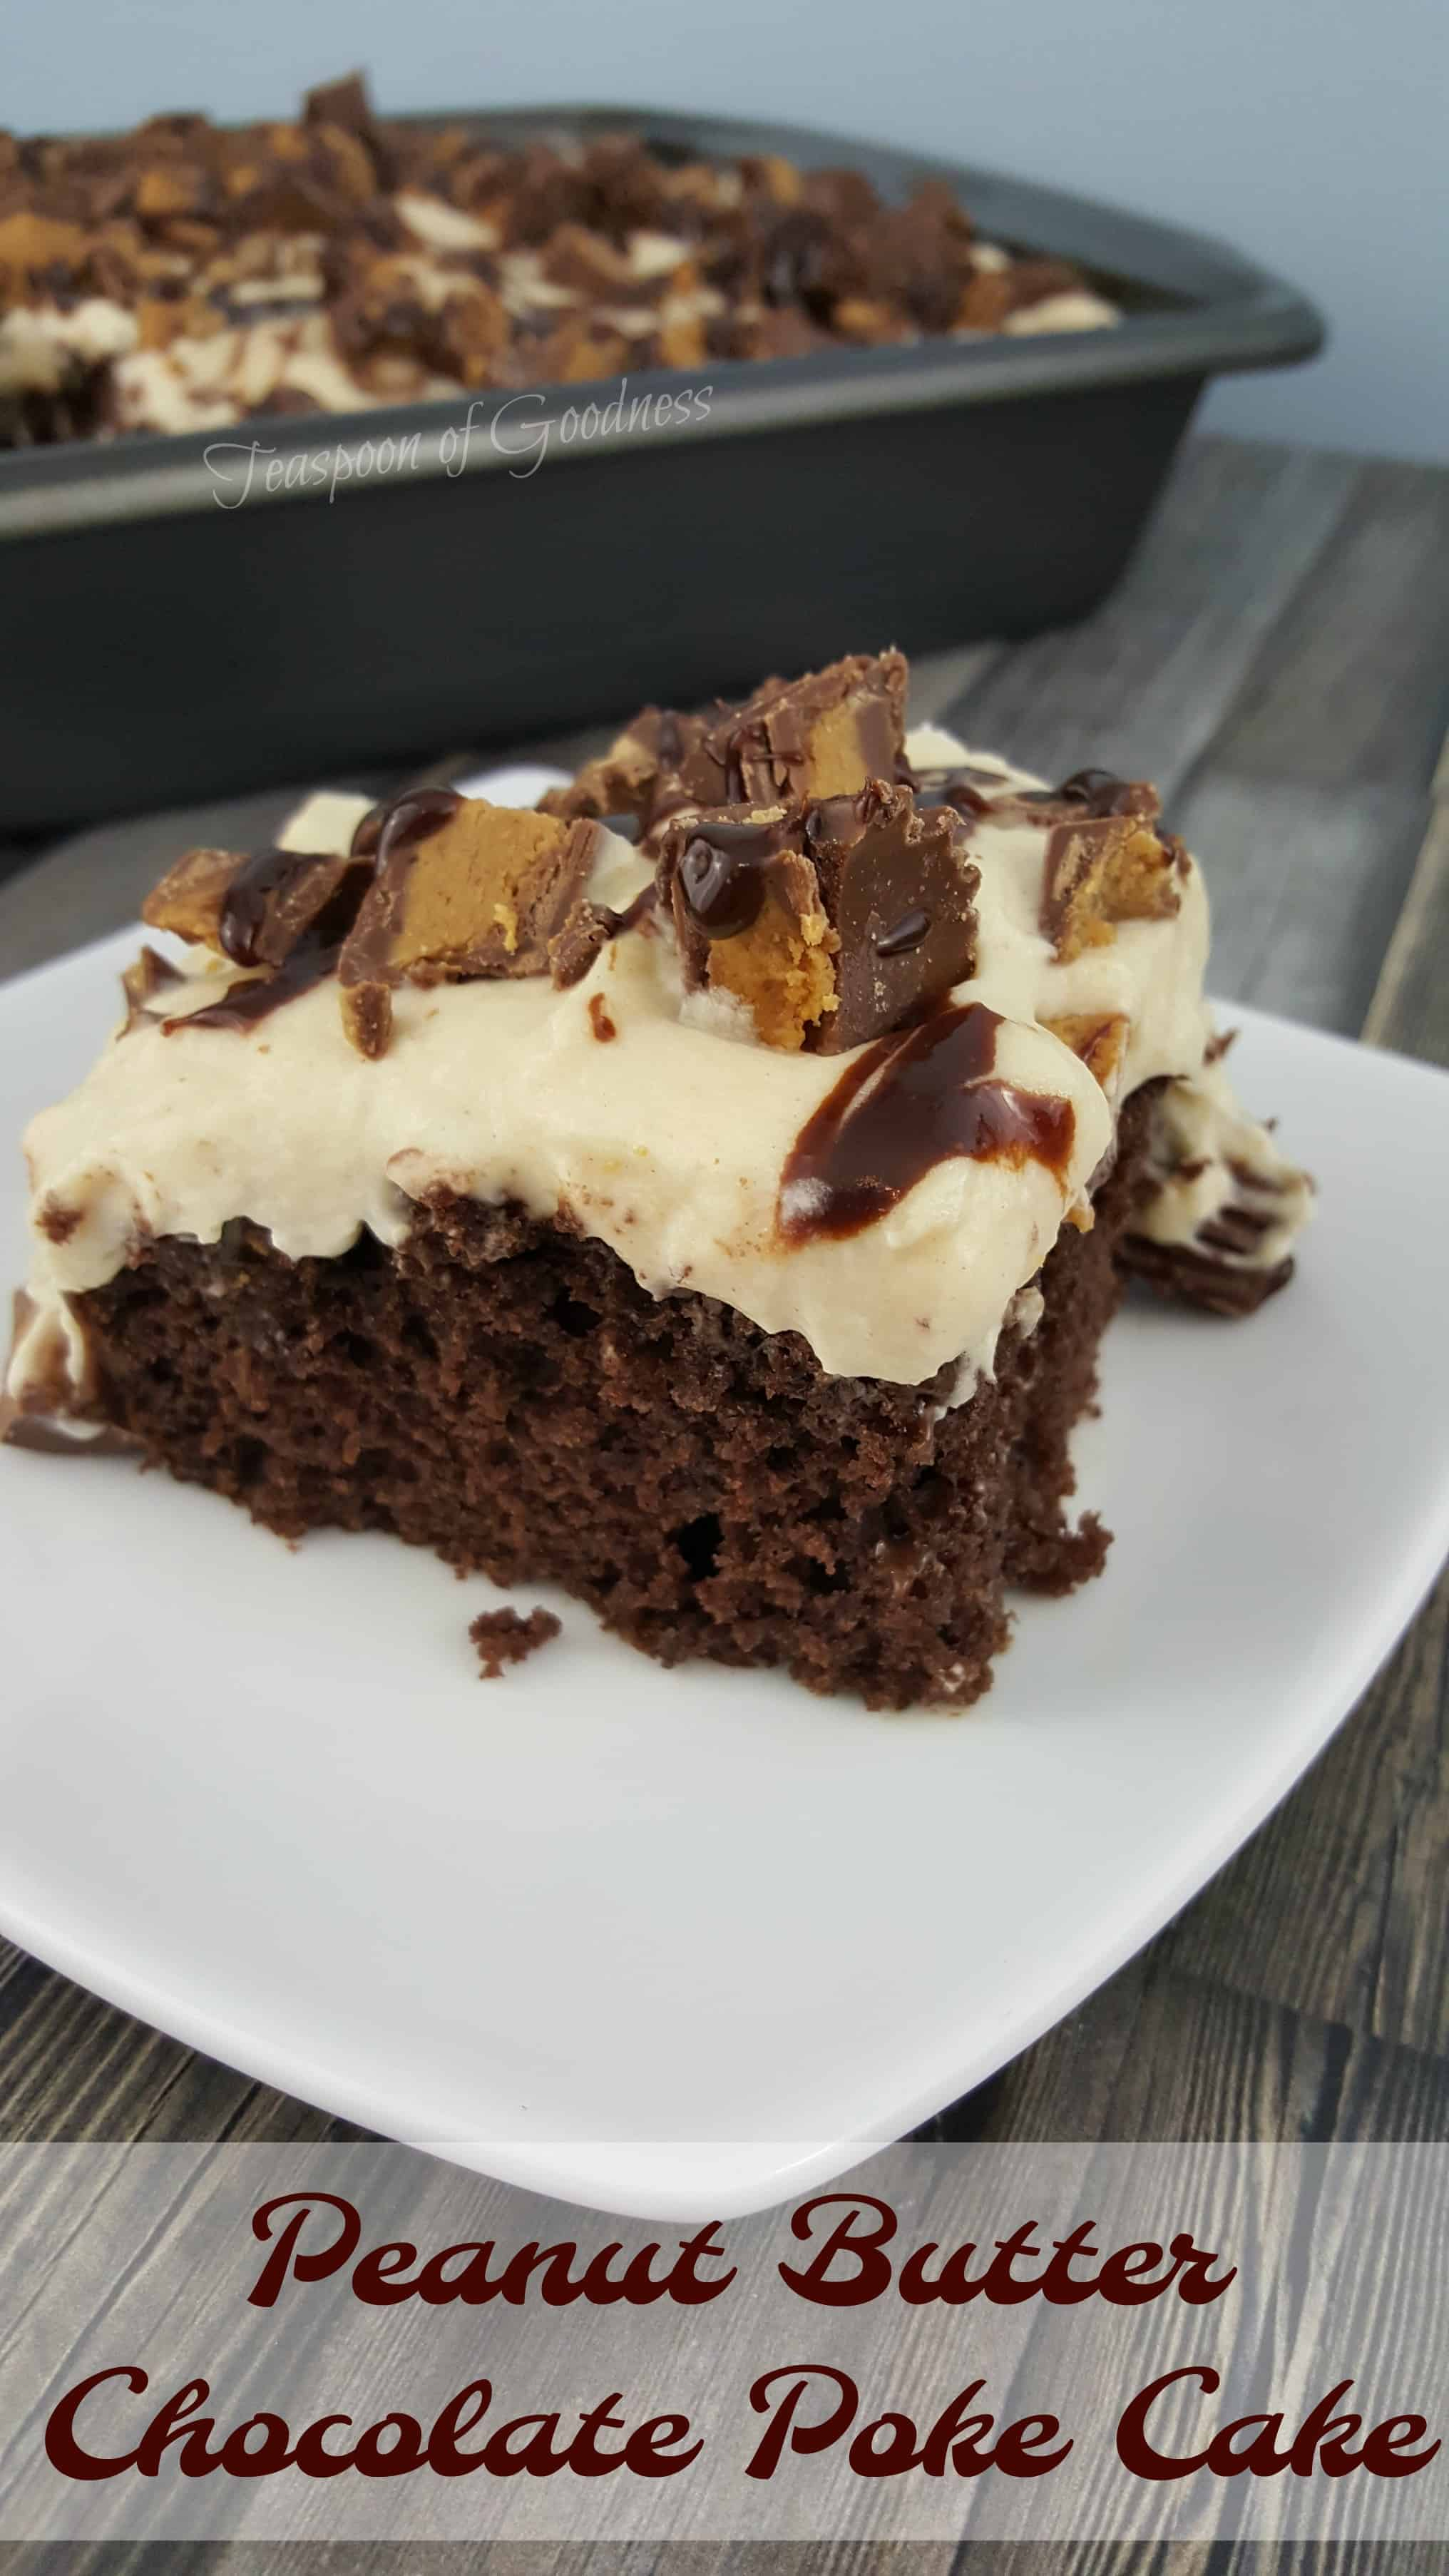 Peanut butter chocolate poke cake teaspoon of goodness for Peanut butter recipes easy dessert